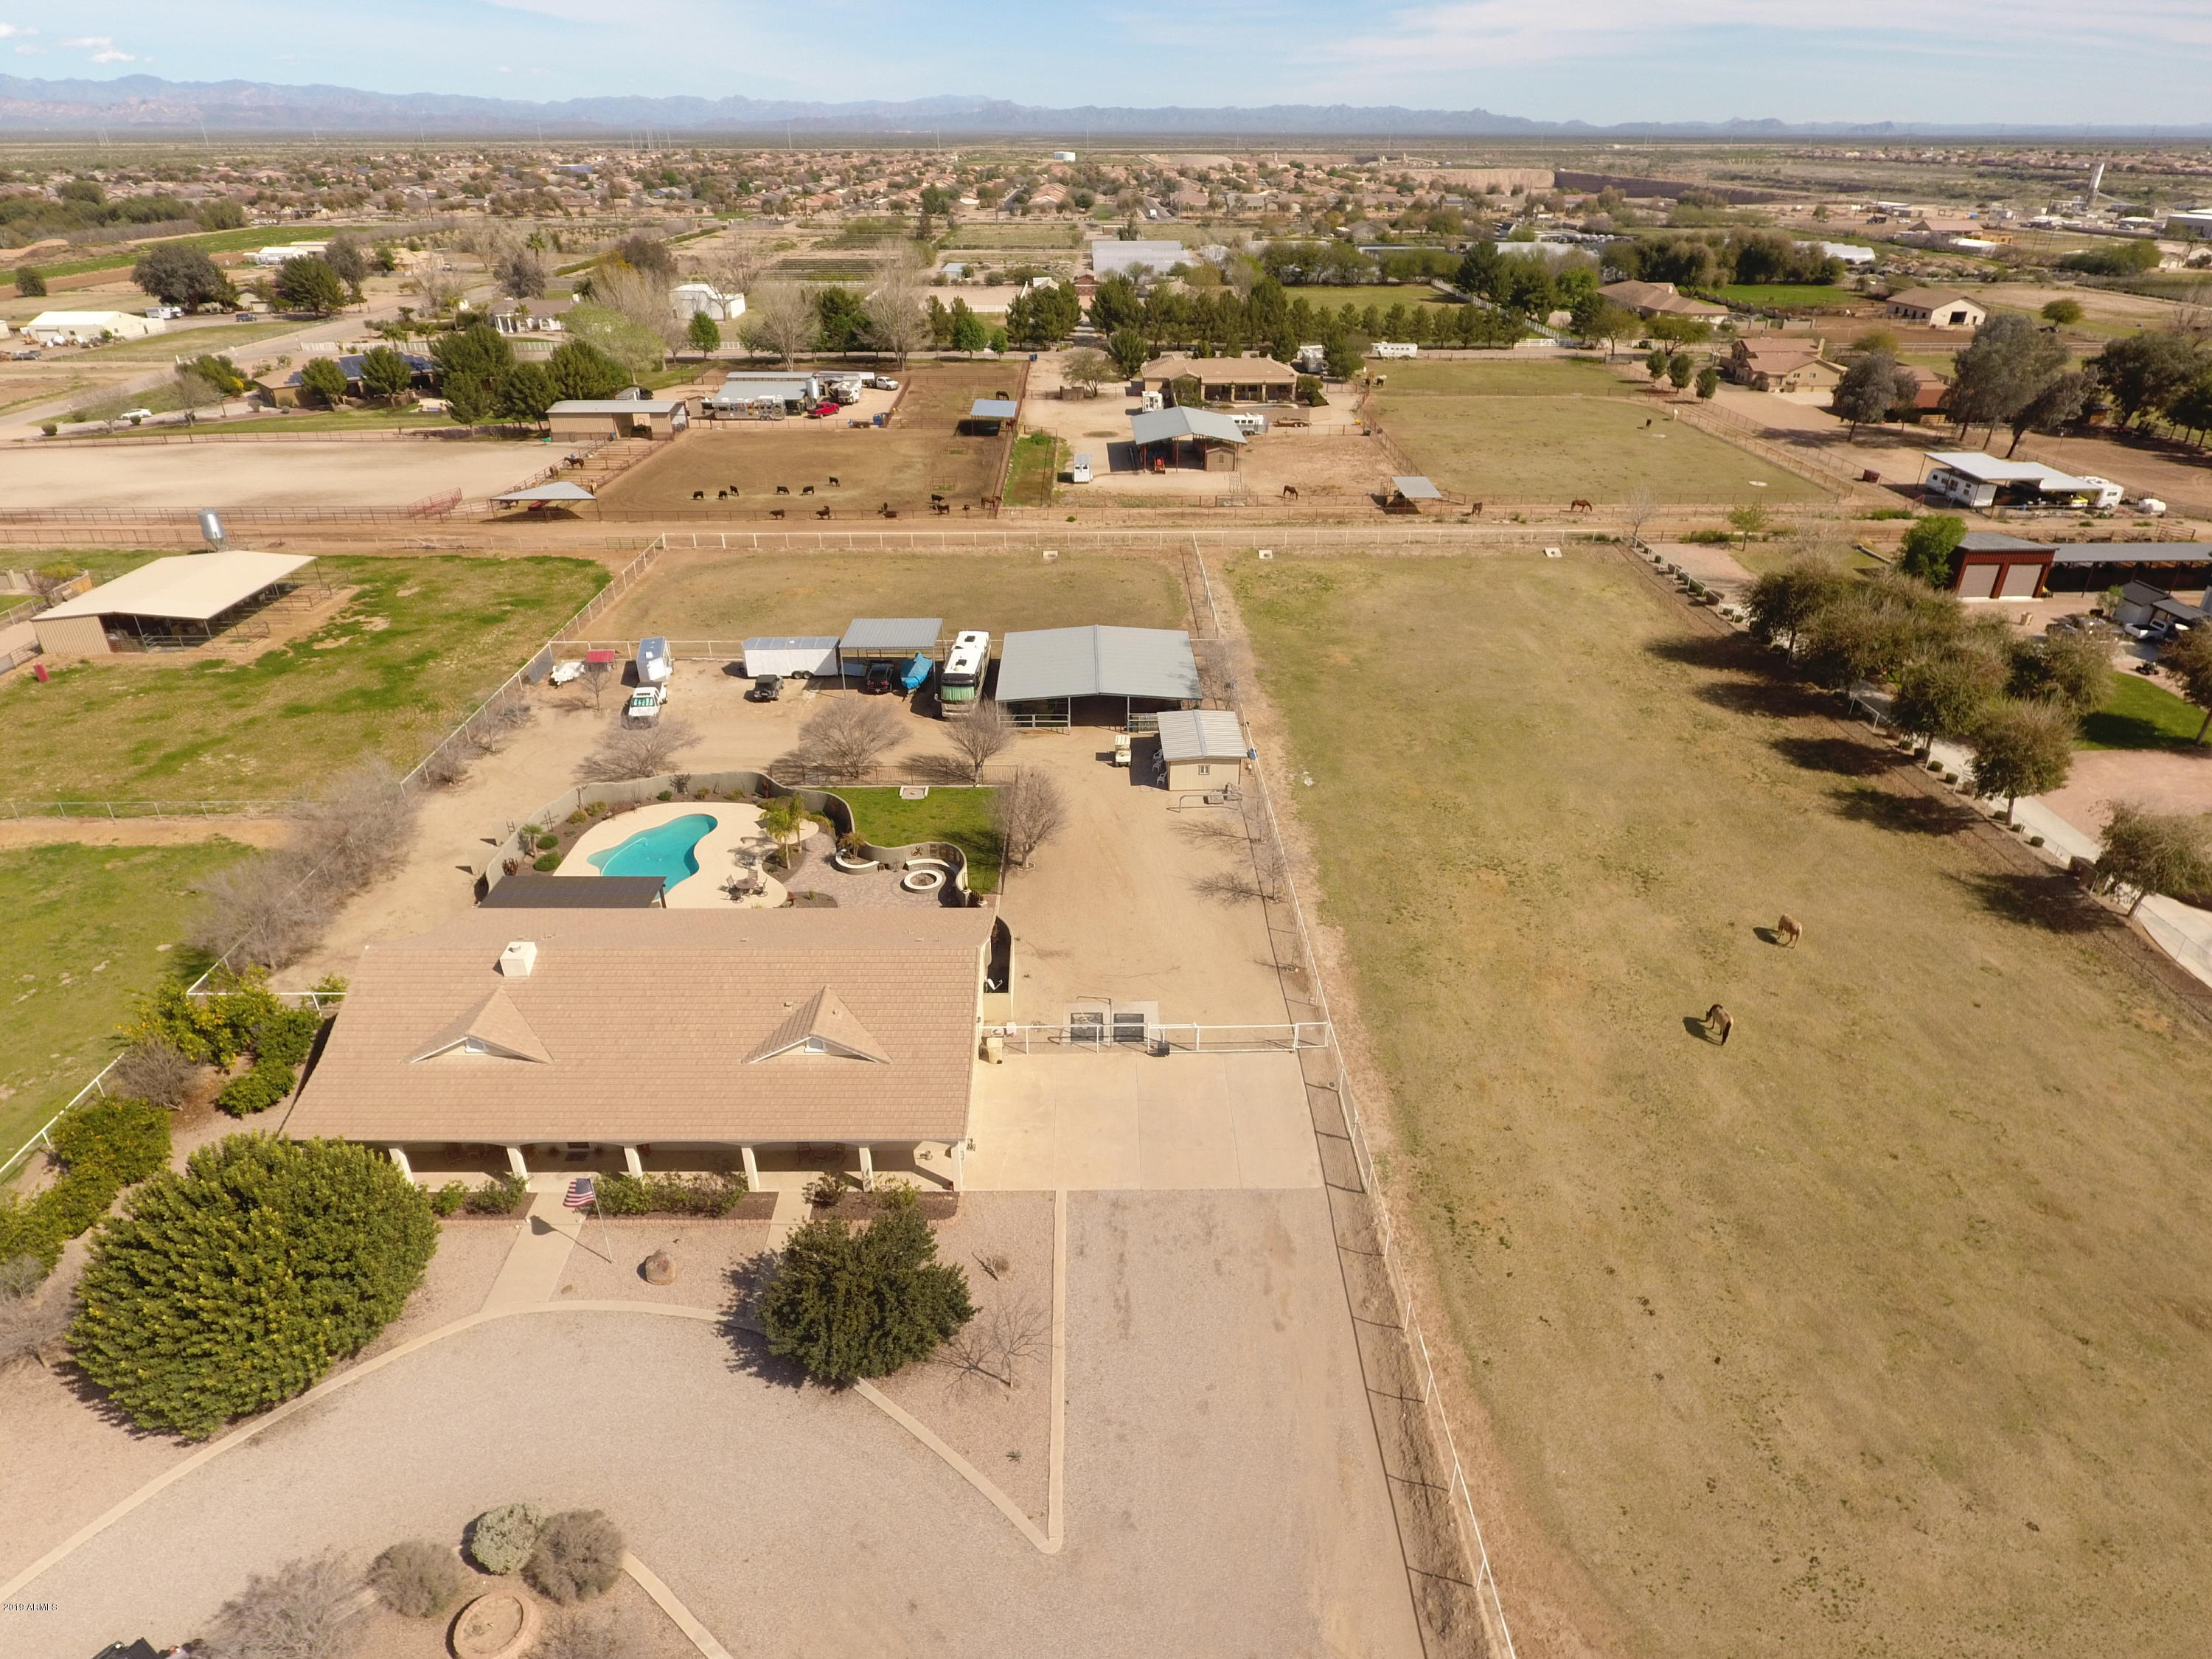 MLS 5886006 39791 N COUNTRY Lane, San Tan Valley, AZ 85140 San Tan Valley